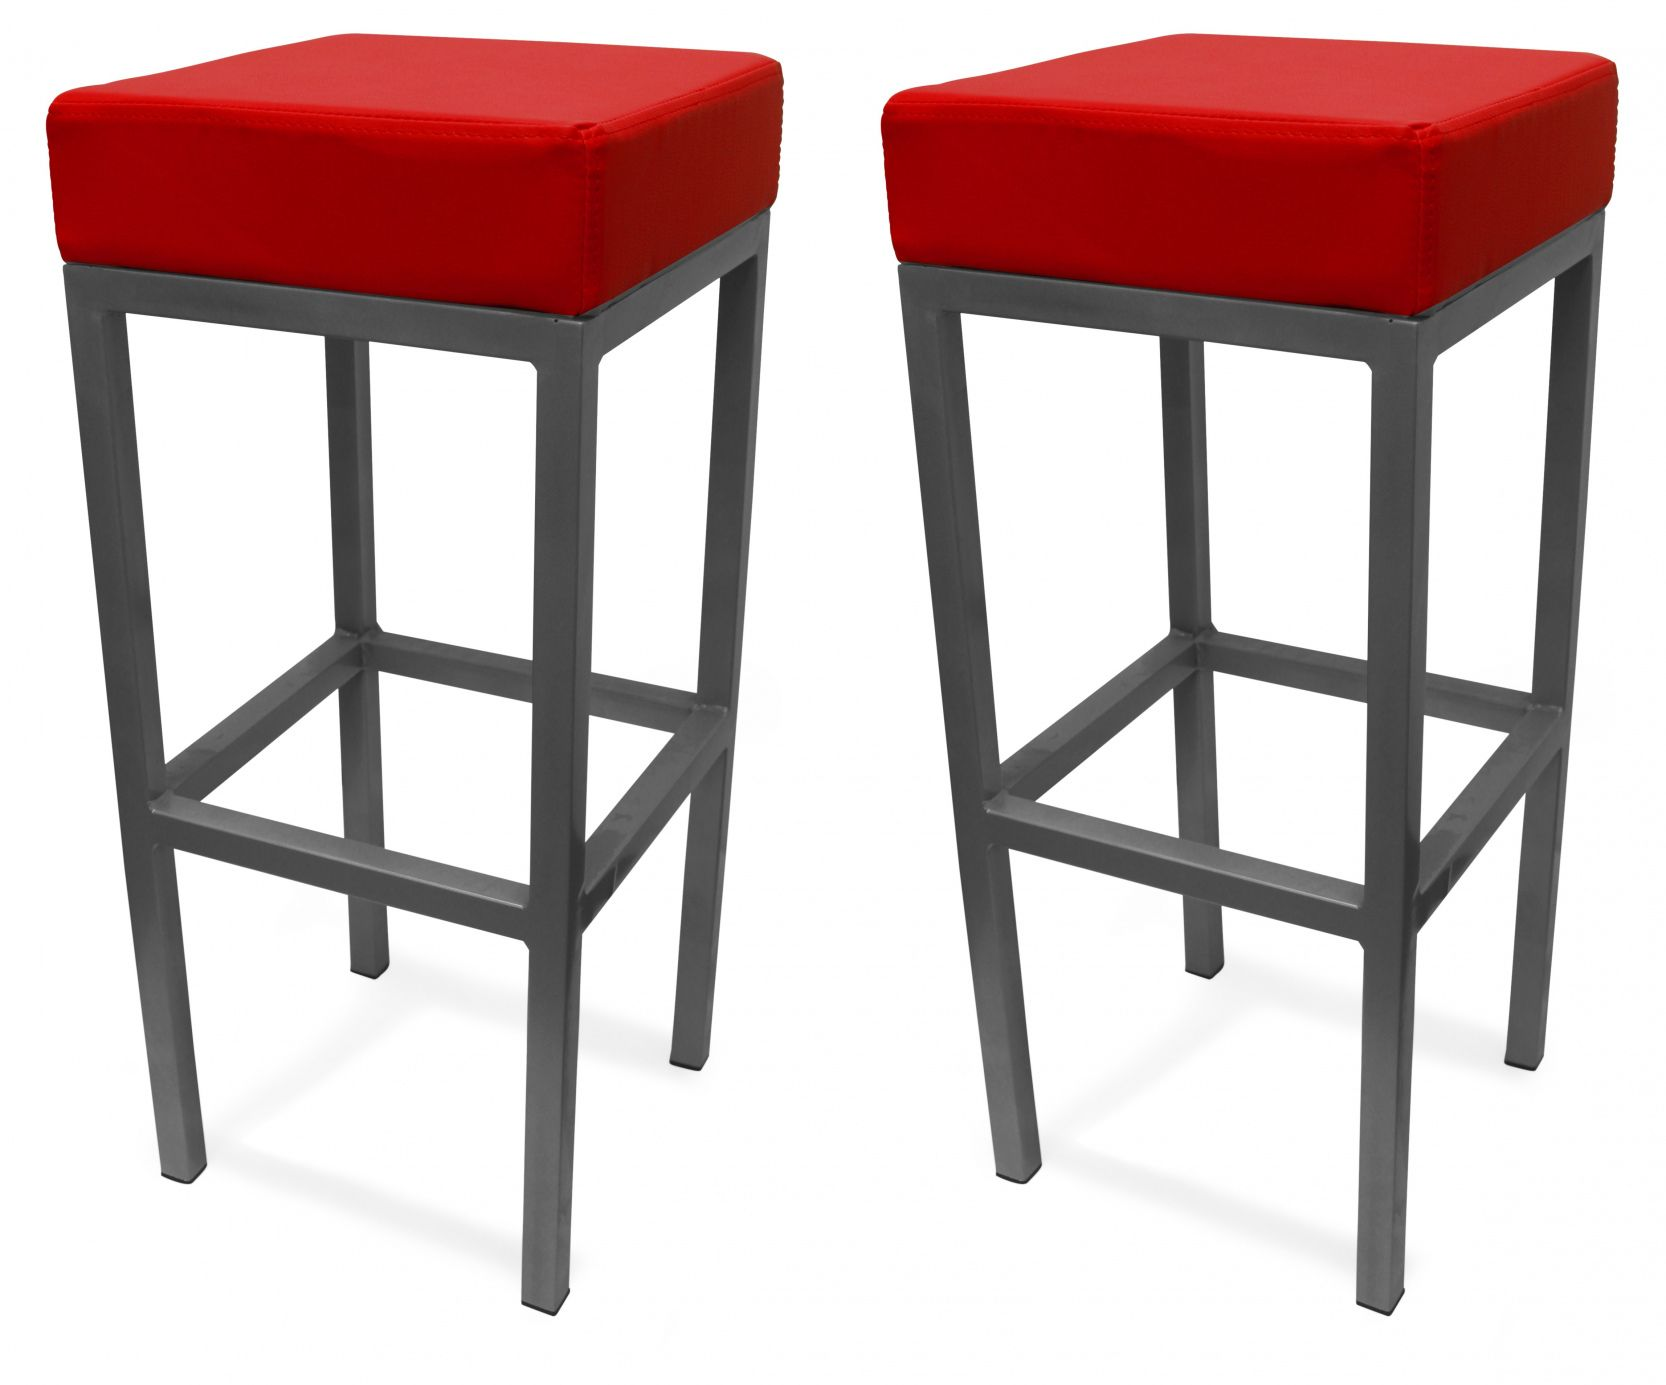 77 Red Leather Bar Stools with Back Modern Rustic Furniture Check